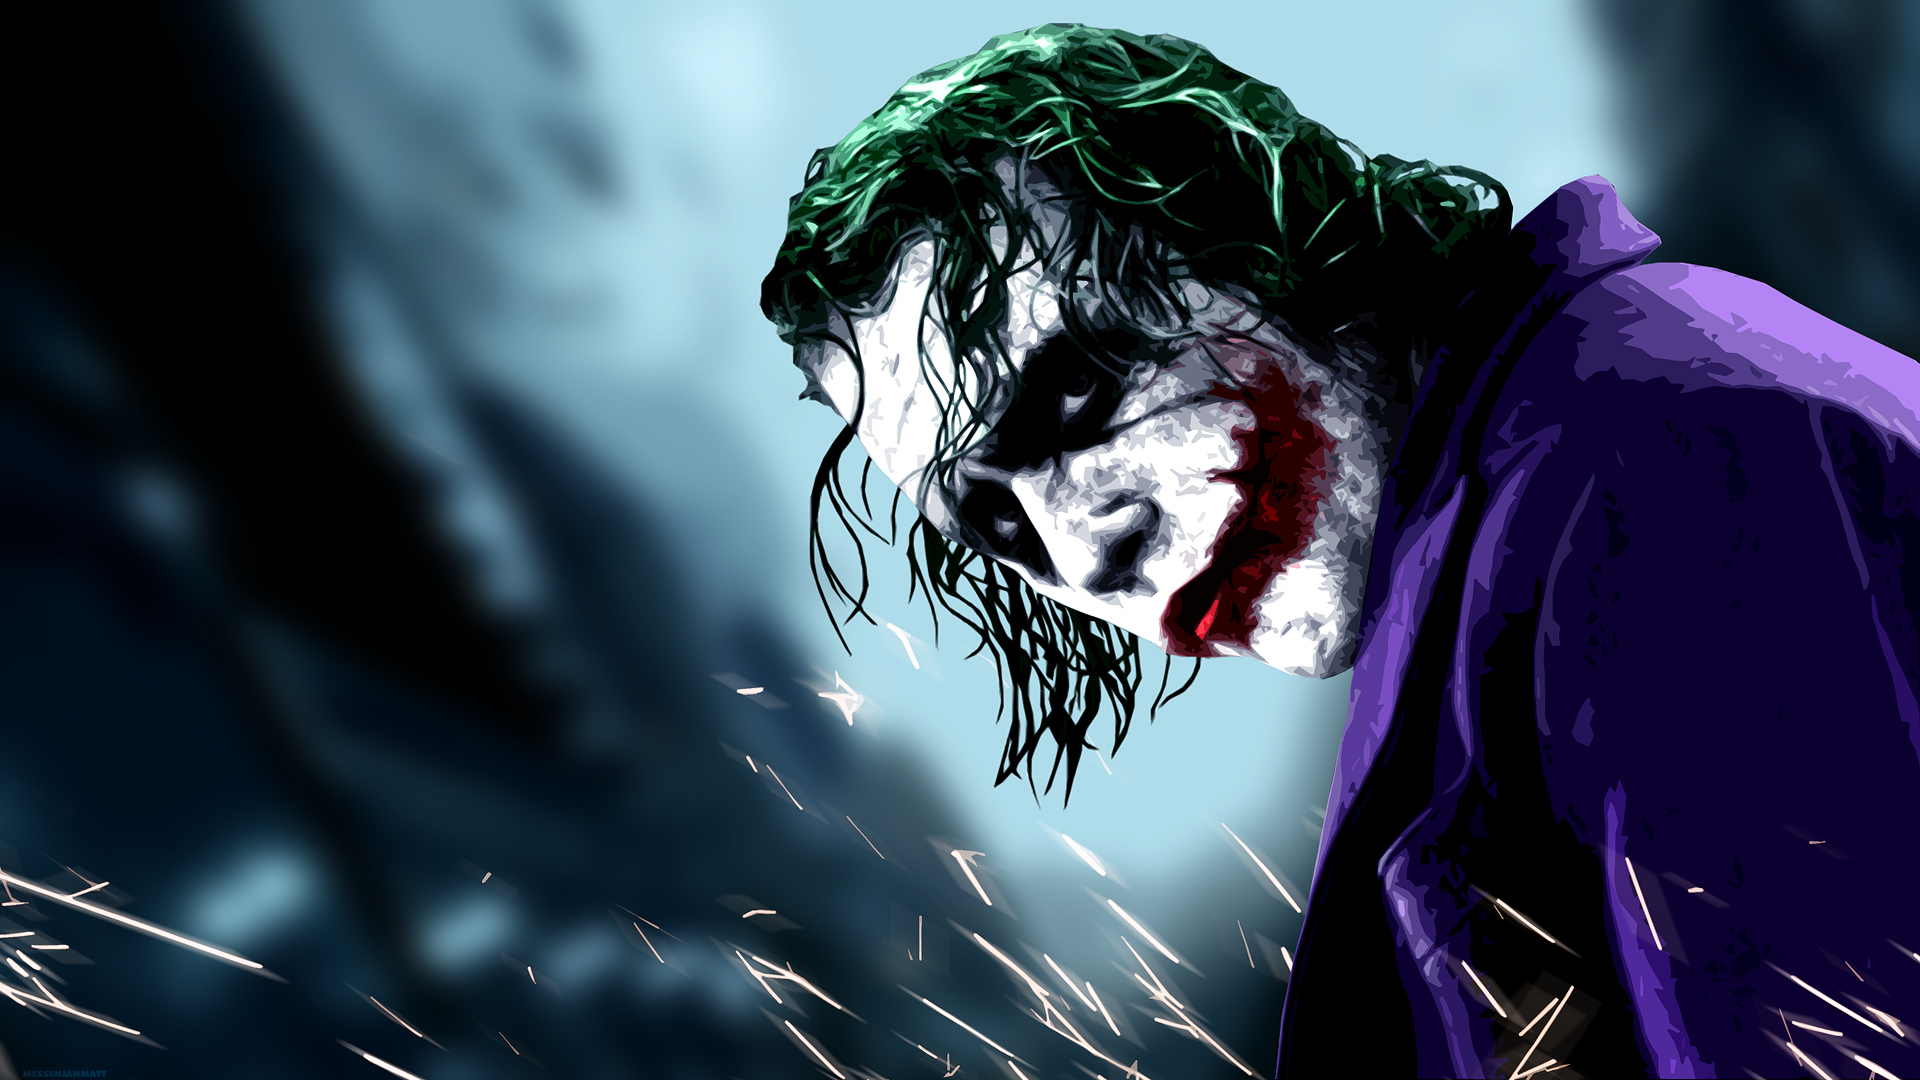 image joker hd wallpaper joker pictures cool wallpapers jpg